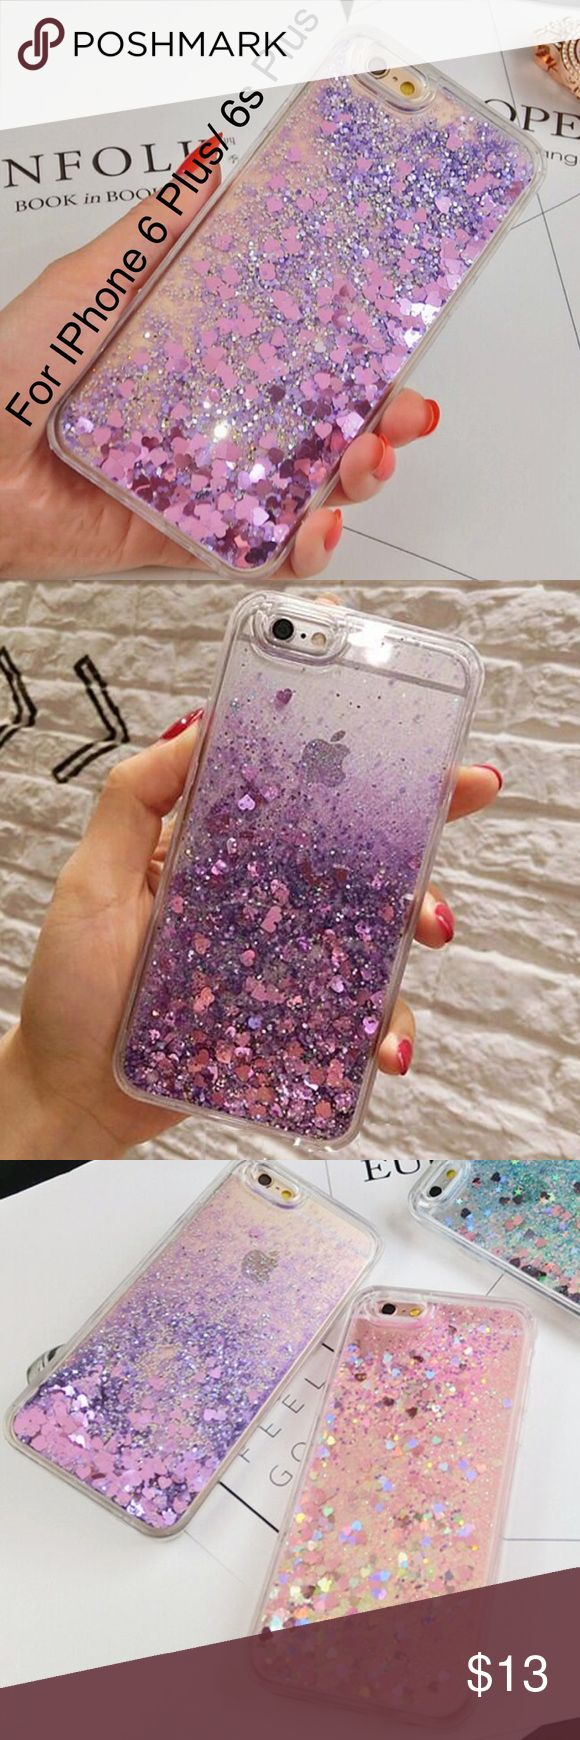 Purple Glitter Hearts Liquid IPhone Hard Case This is for IPhone 6 Plus or 6s Plus (Not for IPhone 6 or 6s). Brand new. Color Purple. Good quality. Very stylish. Hard case. No trade. Browse my closet to see more phone cases. Follow me to see new listings. Accessories Phone Cases